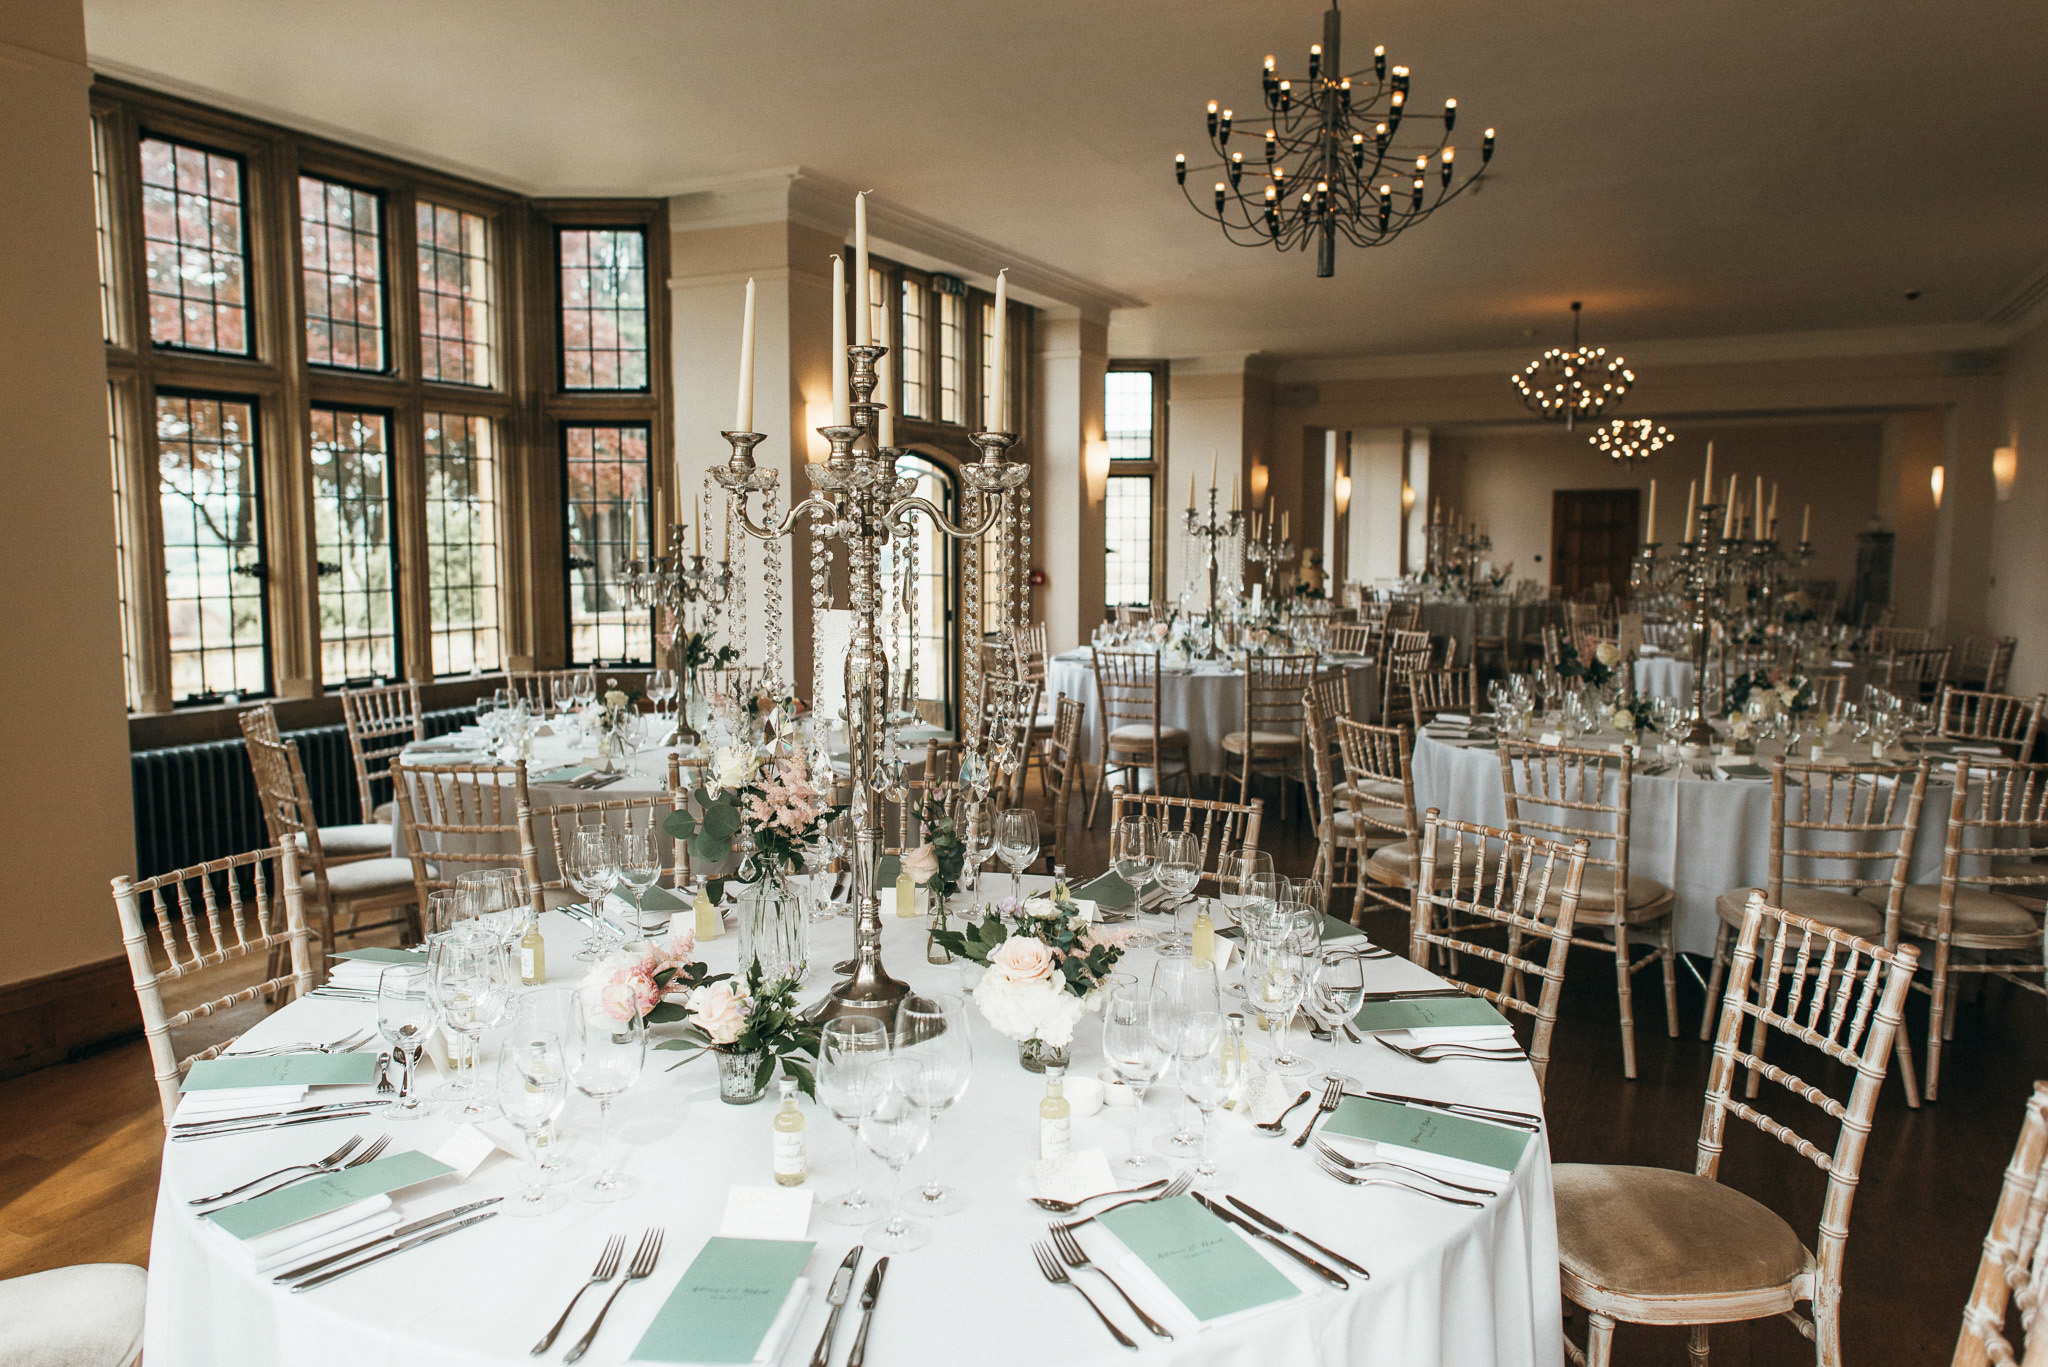 Coombe lodge wedding breakfast